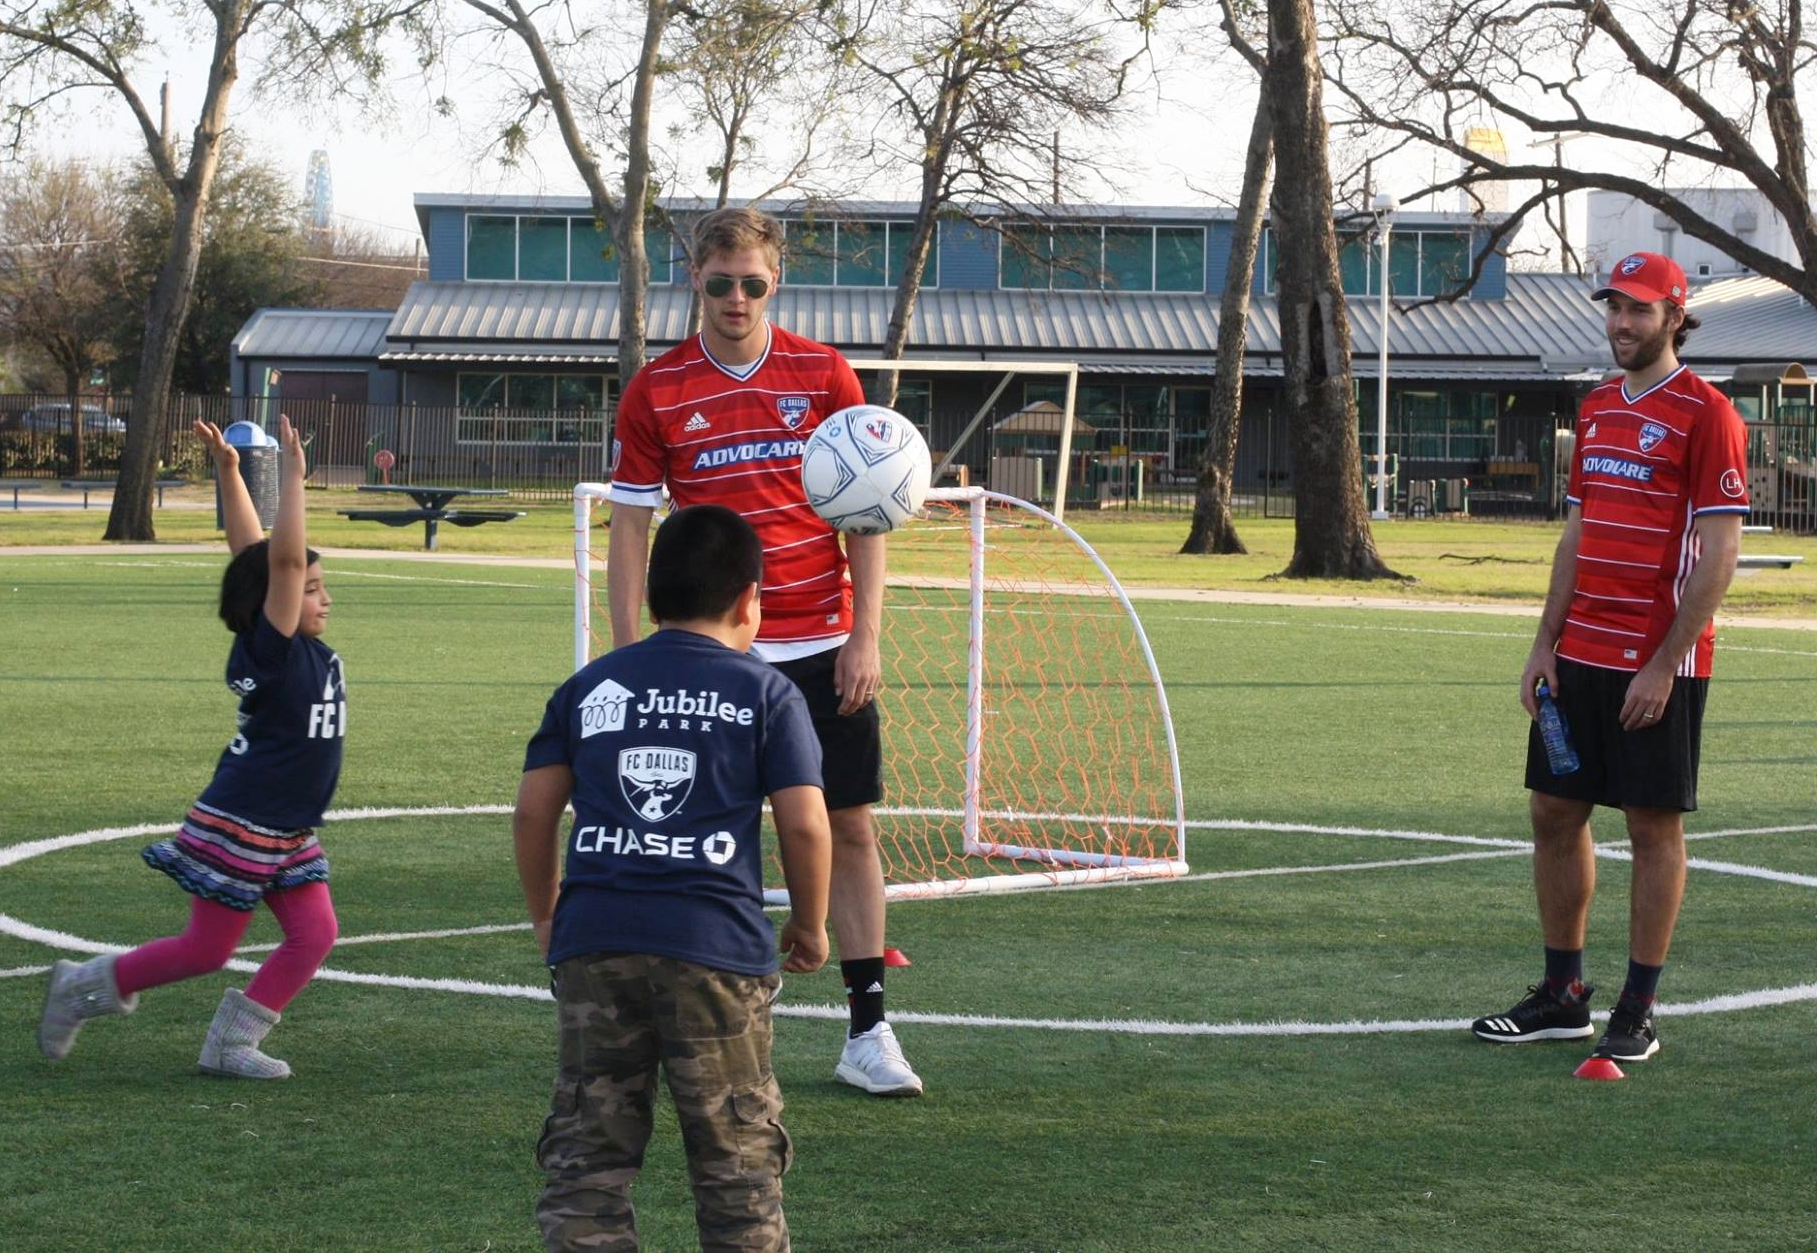 FC Dallas players Walker Zimmerman, Victor Ulloa, Ryan Hollingshead and Kellyn Acosta played soccer with 200 Jubilee students, unveiling thousands of dollars' worth of gear donated by Chase.